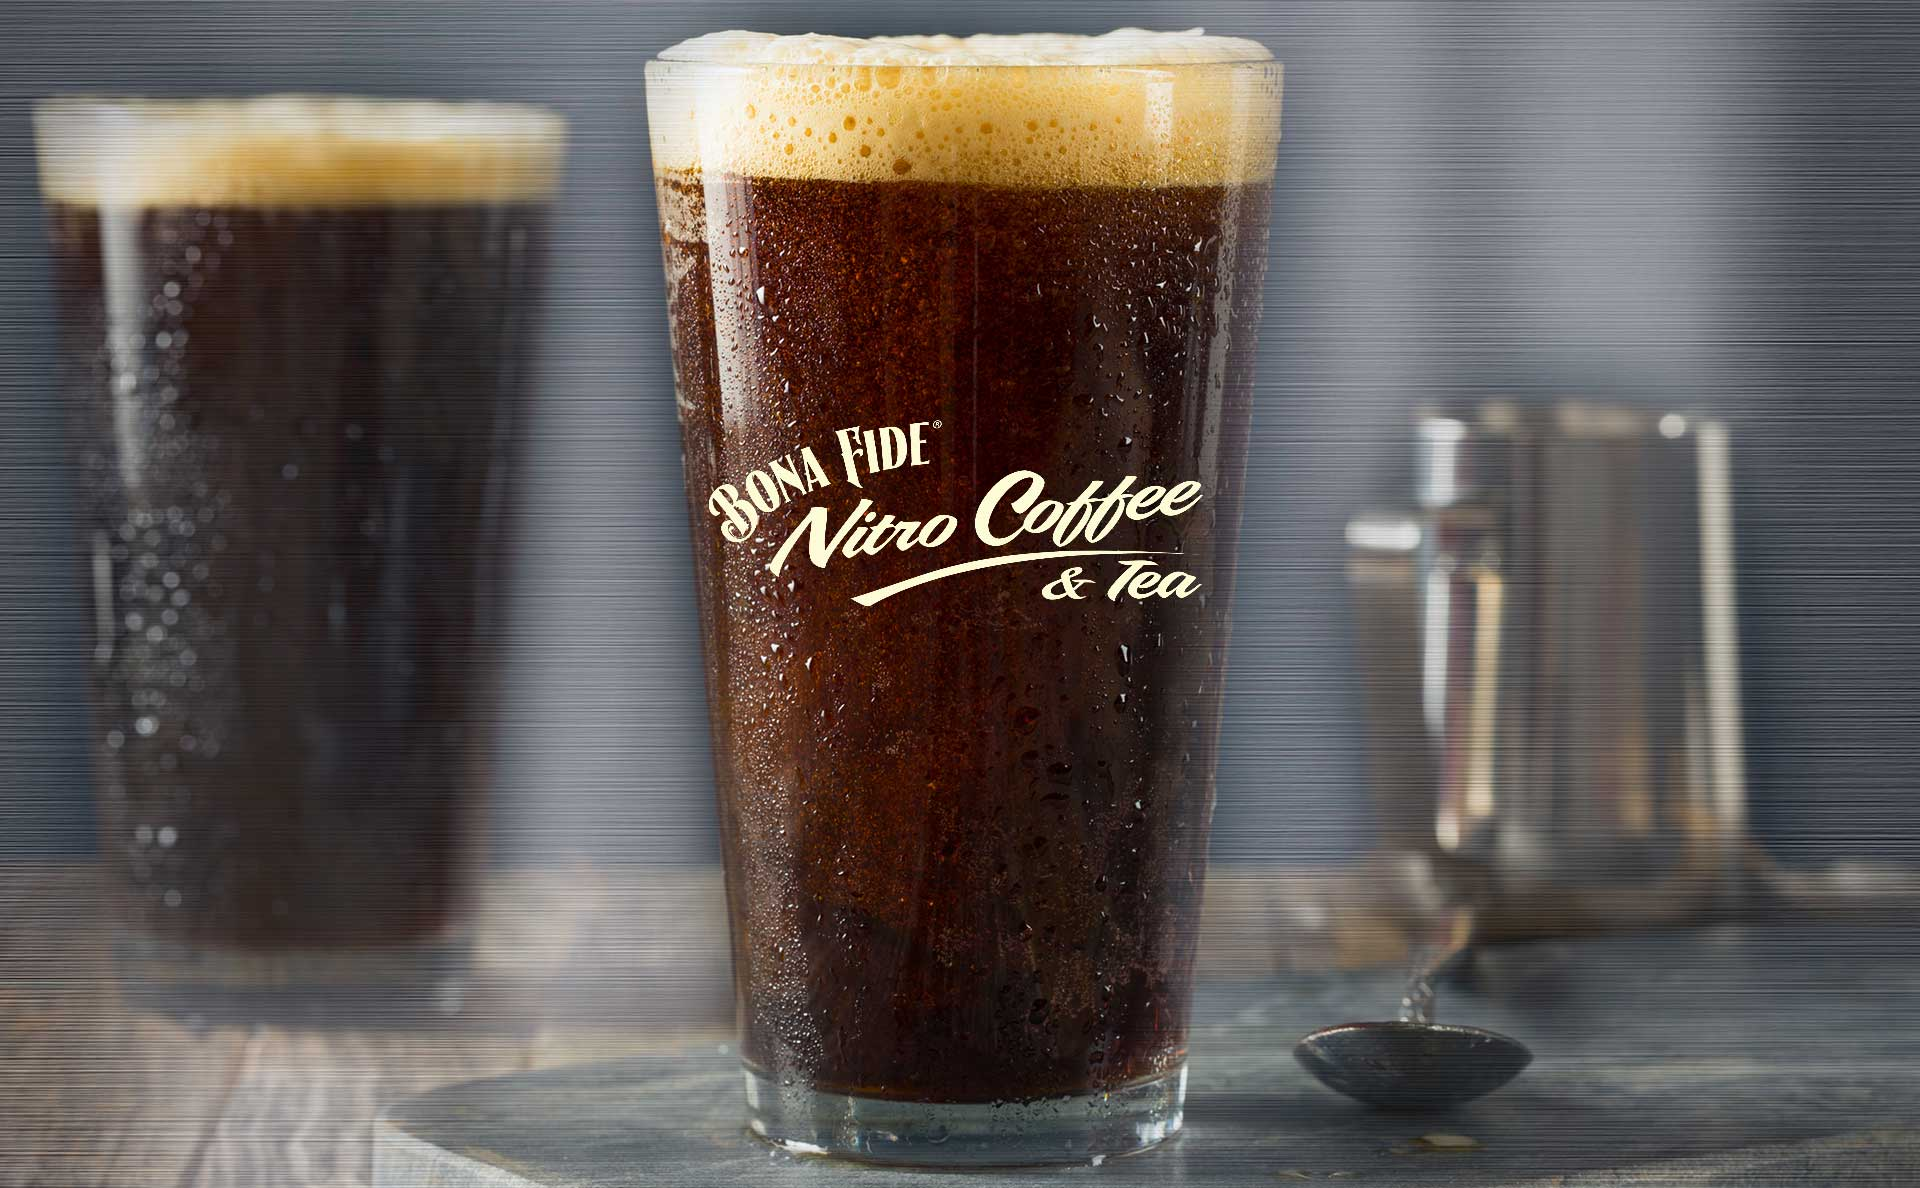 Cold Brew Nitro Coffee